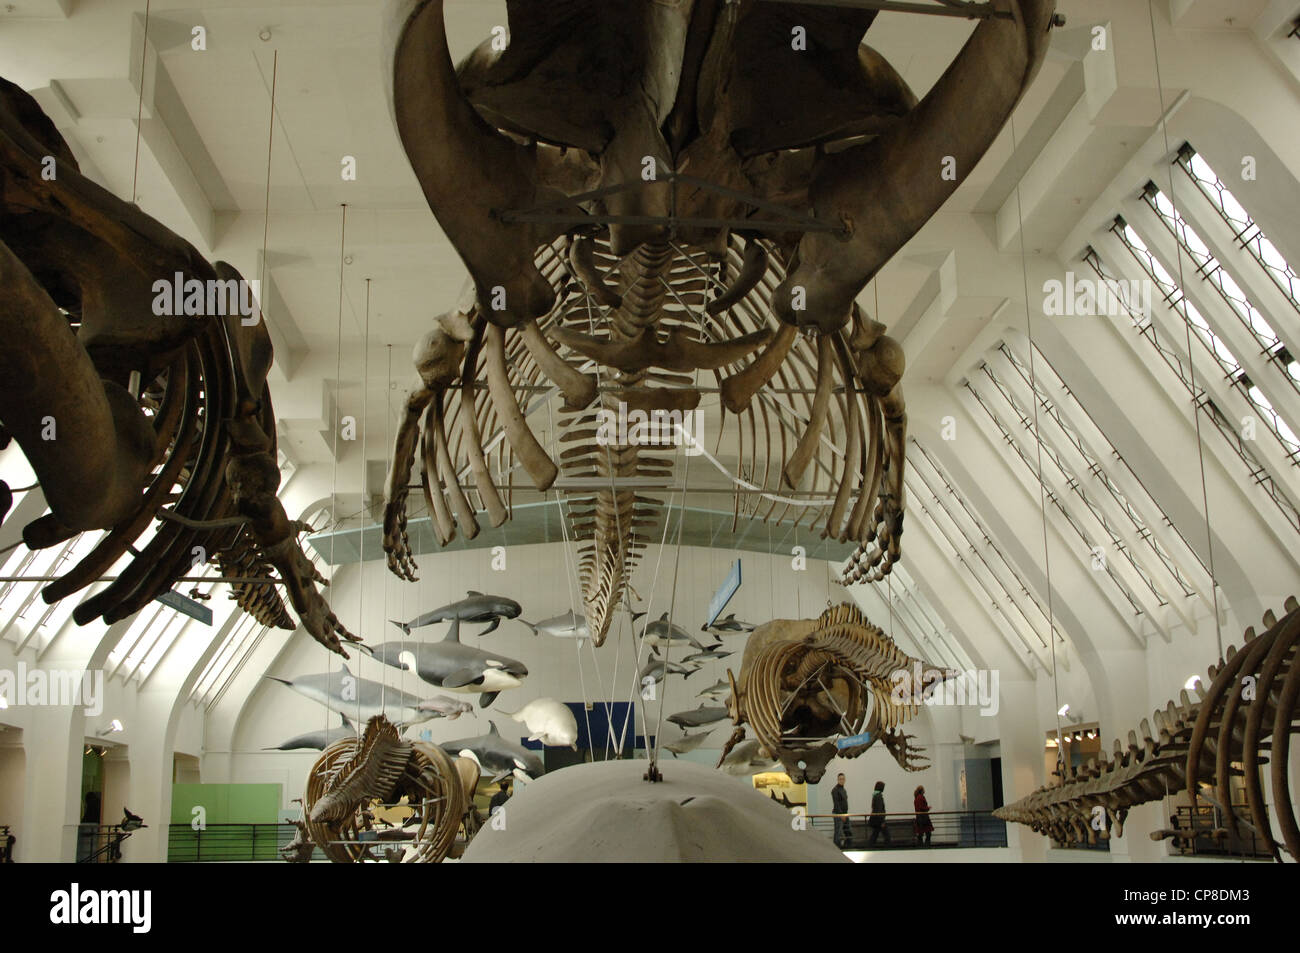 Whale skeleton. Natural History Museum. London. United Kingdom. - Stock Image